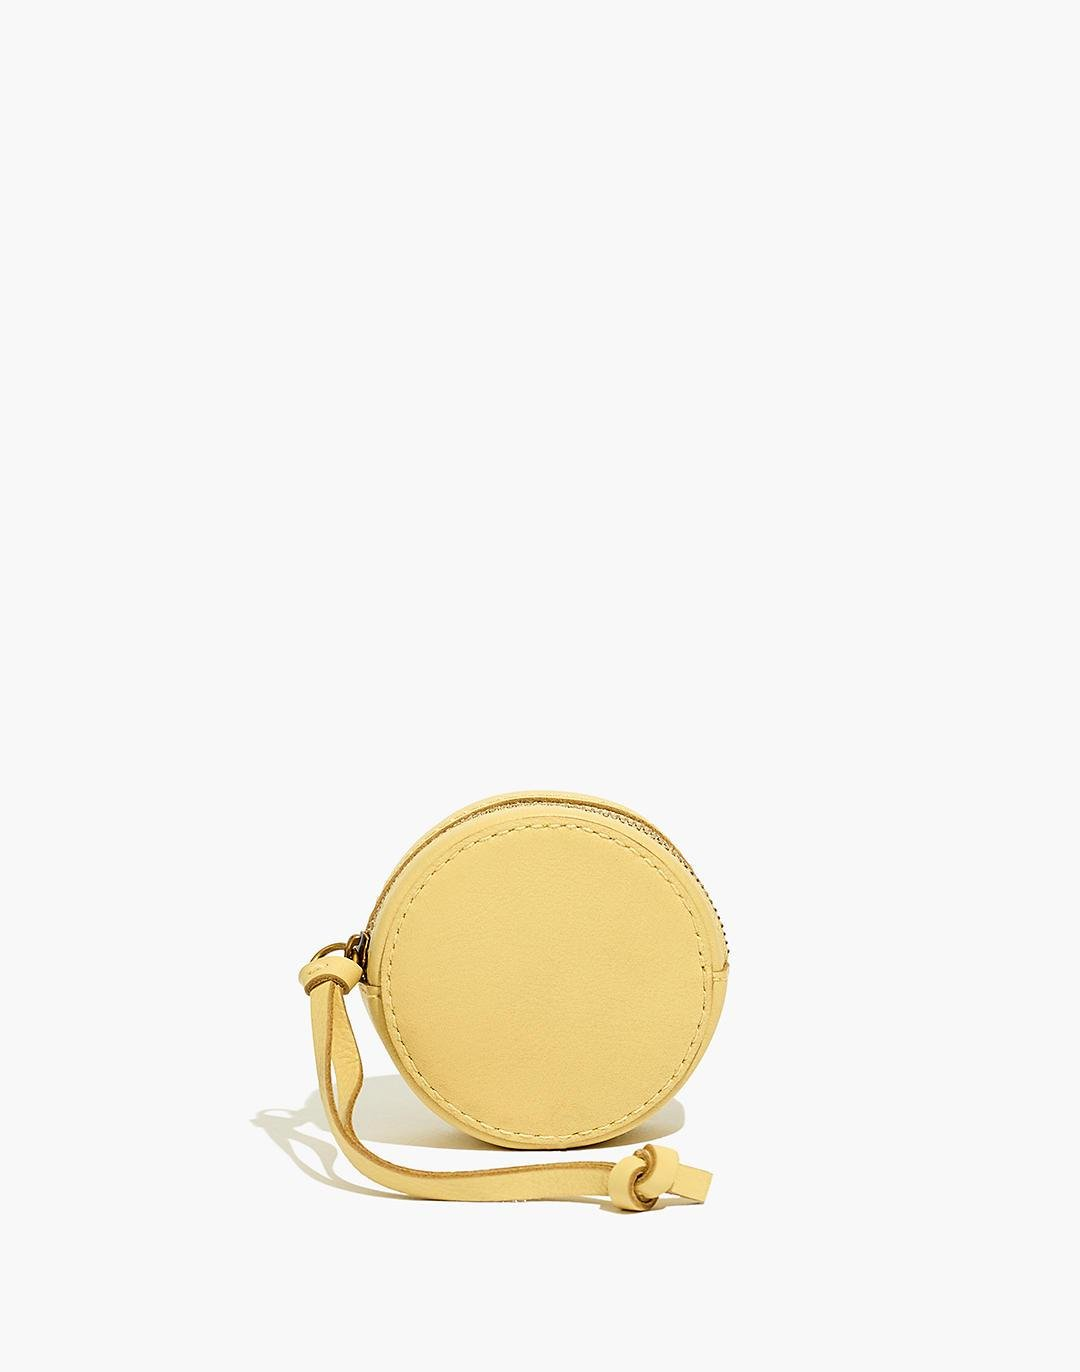 The Earbud Circle Pouch in Leather